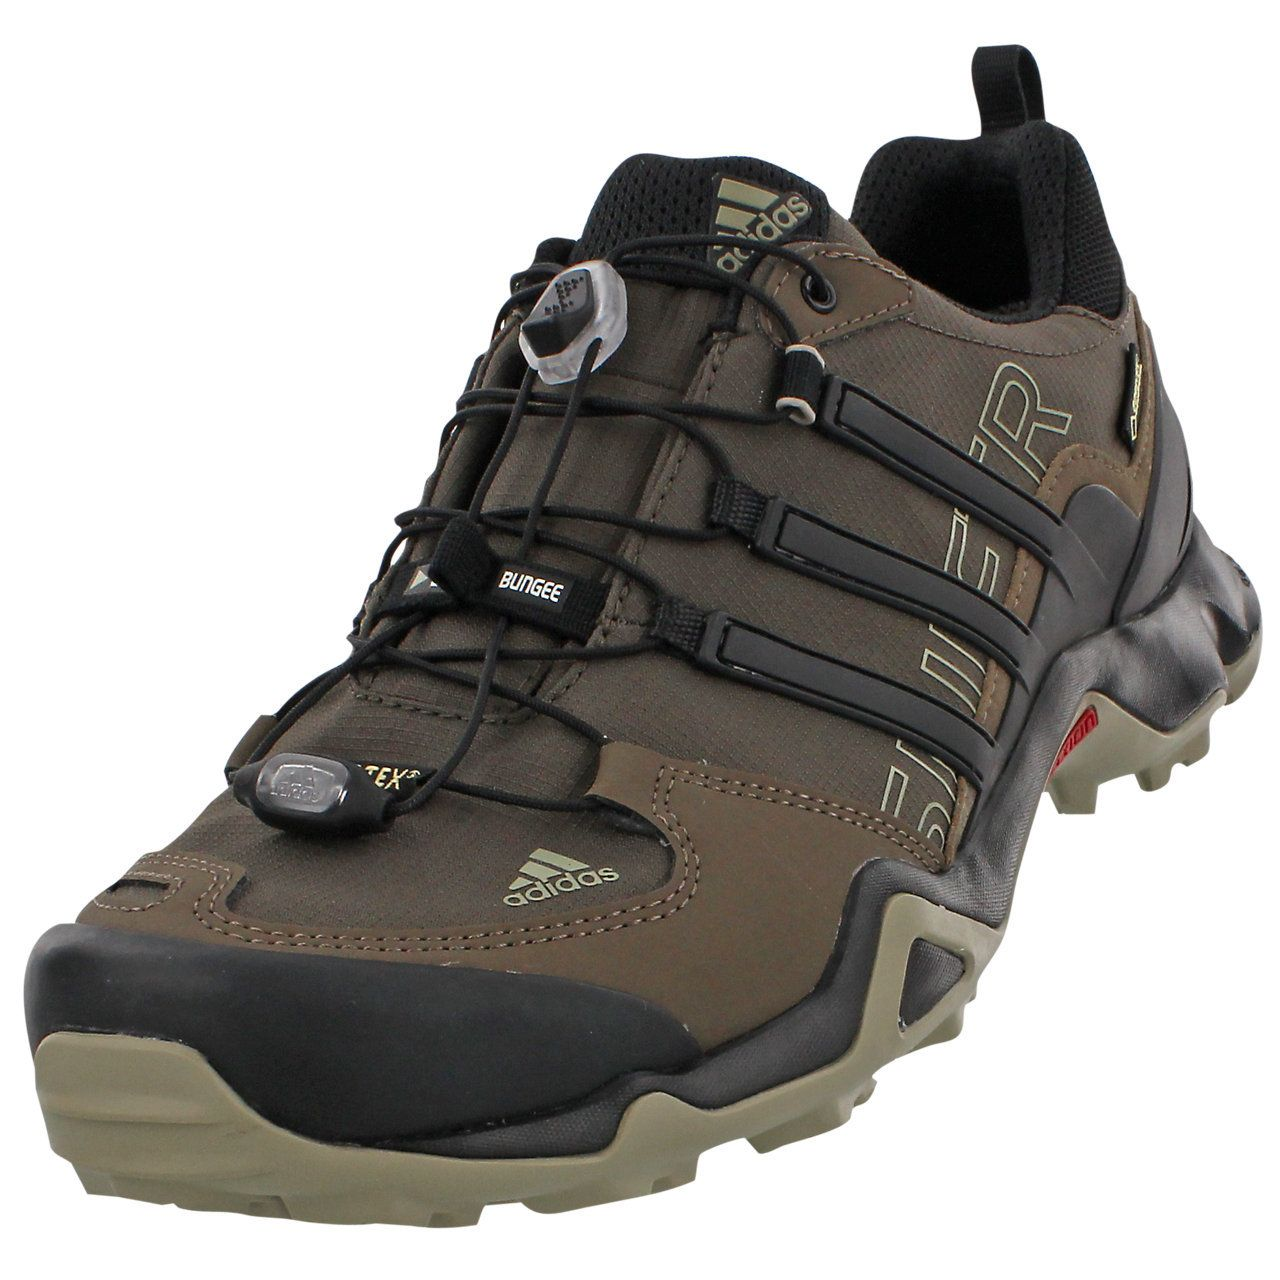 Adidas AQ5307 Men's Terrex Swift R GTX Shoes | Clothes